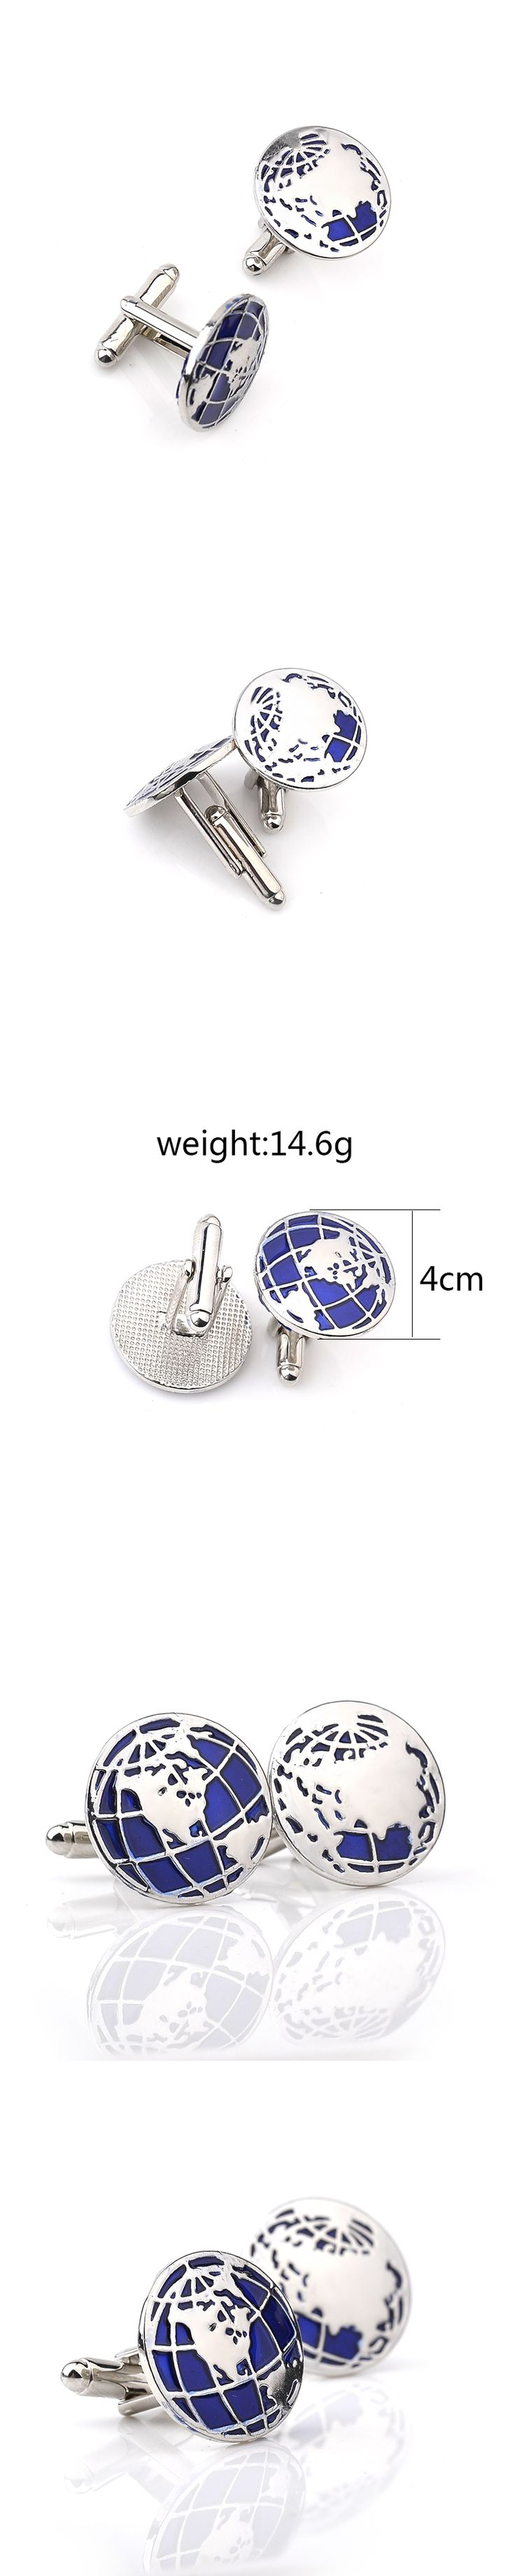 2017 Rushed Sale Classic Cuff For Round Gemelos Gemelos Para Camisas Tie Clip French Men Cufflinks The Earth Map Drip